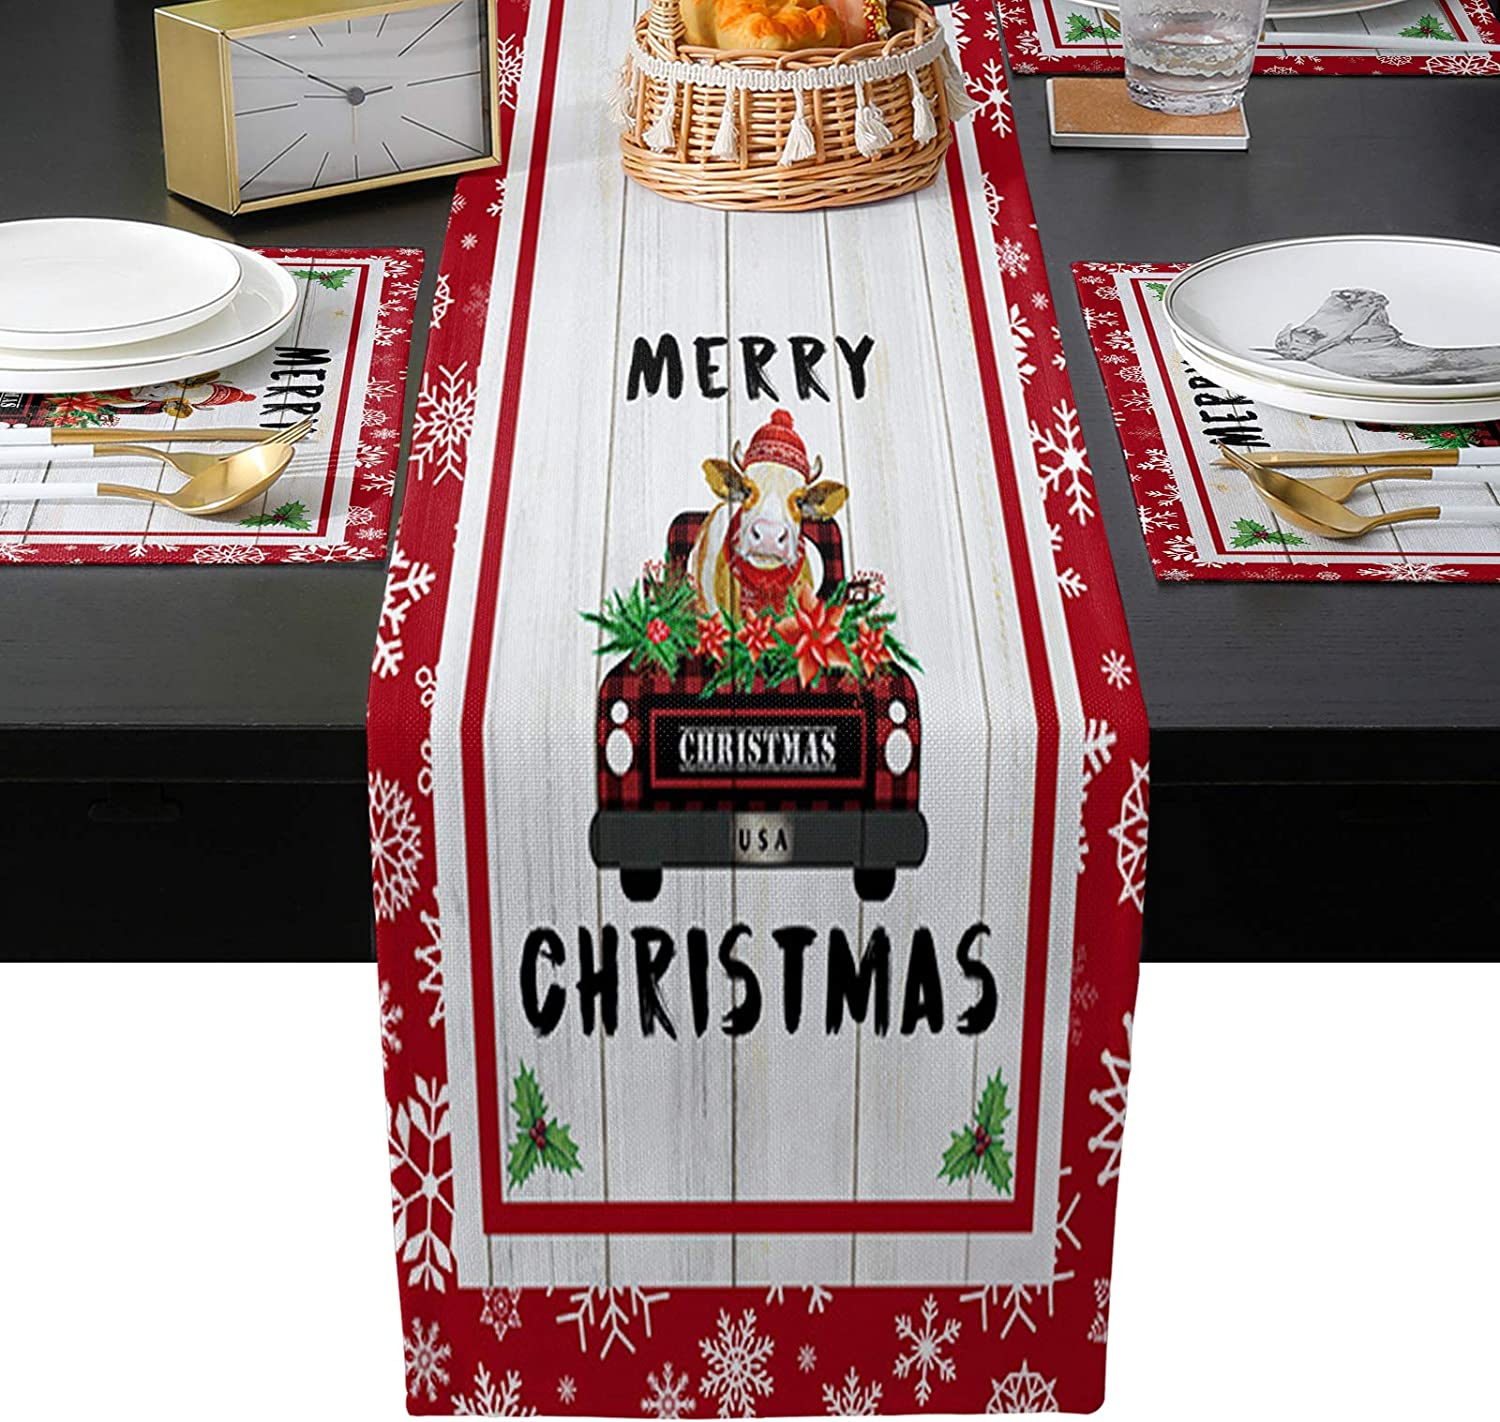 High quality new WARM TOUR Winter Christmas Snowflake Table Set Runner Ranking TOP1 4pcs with